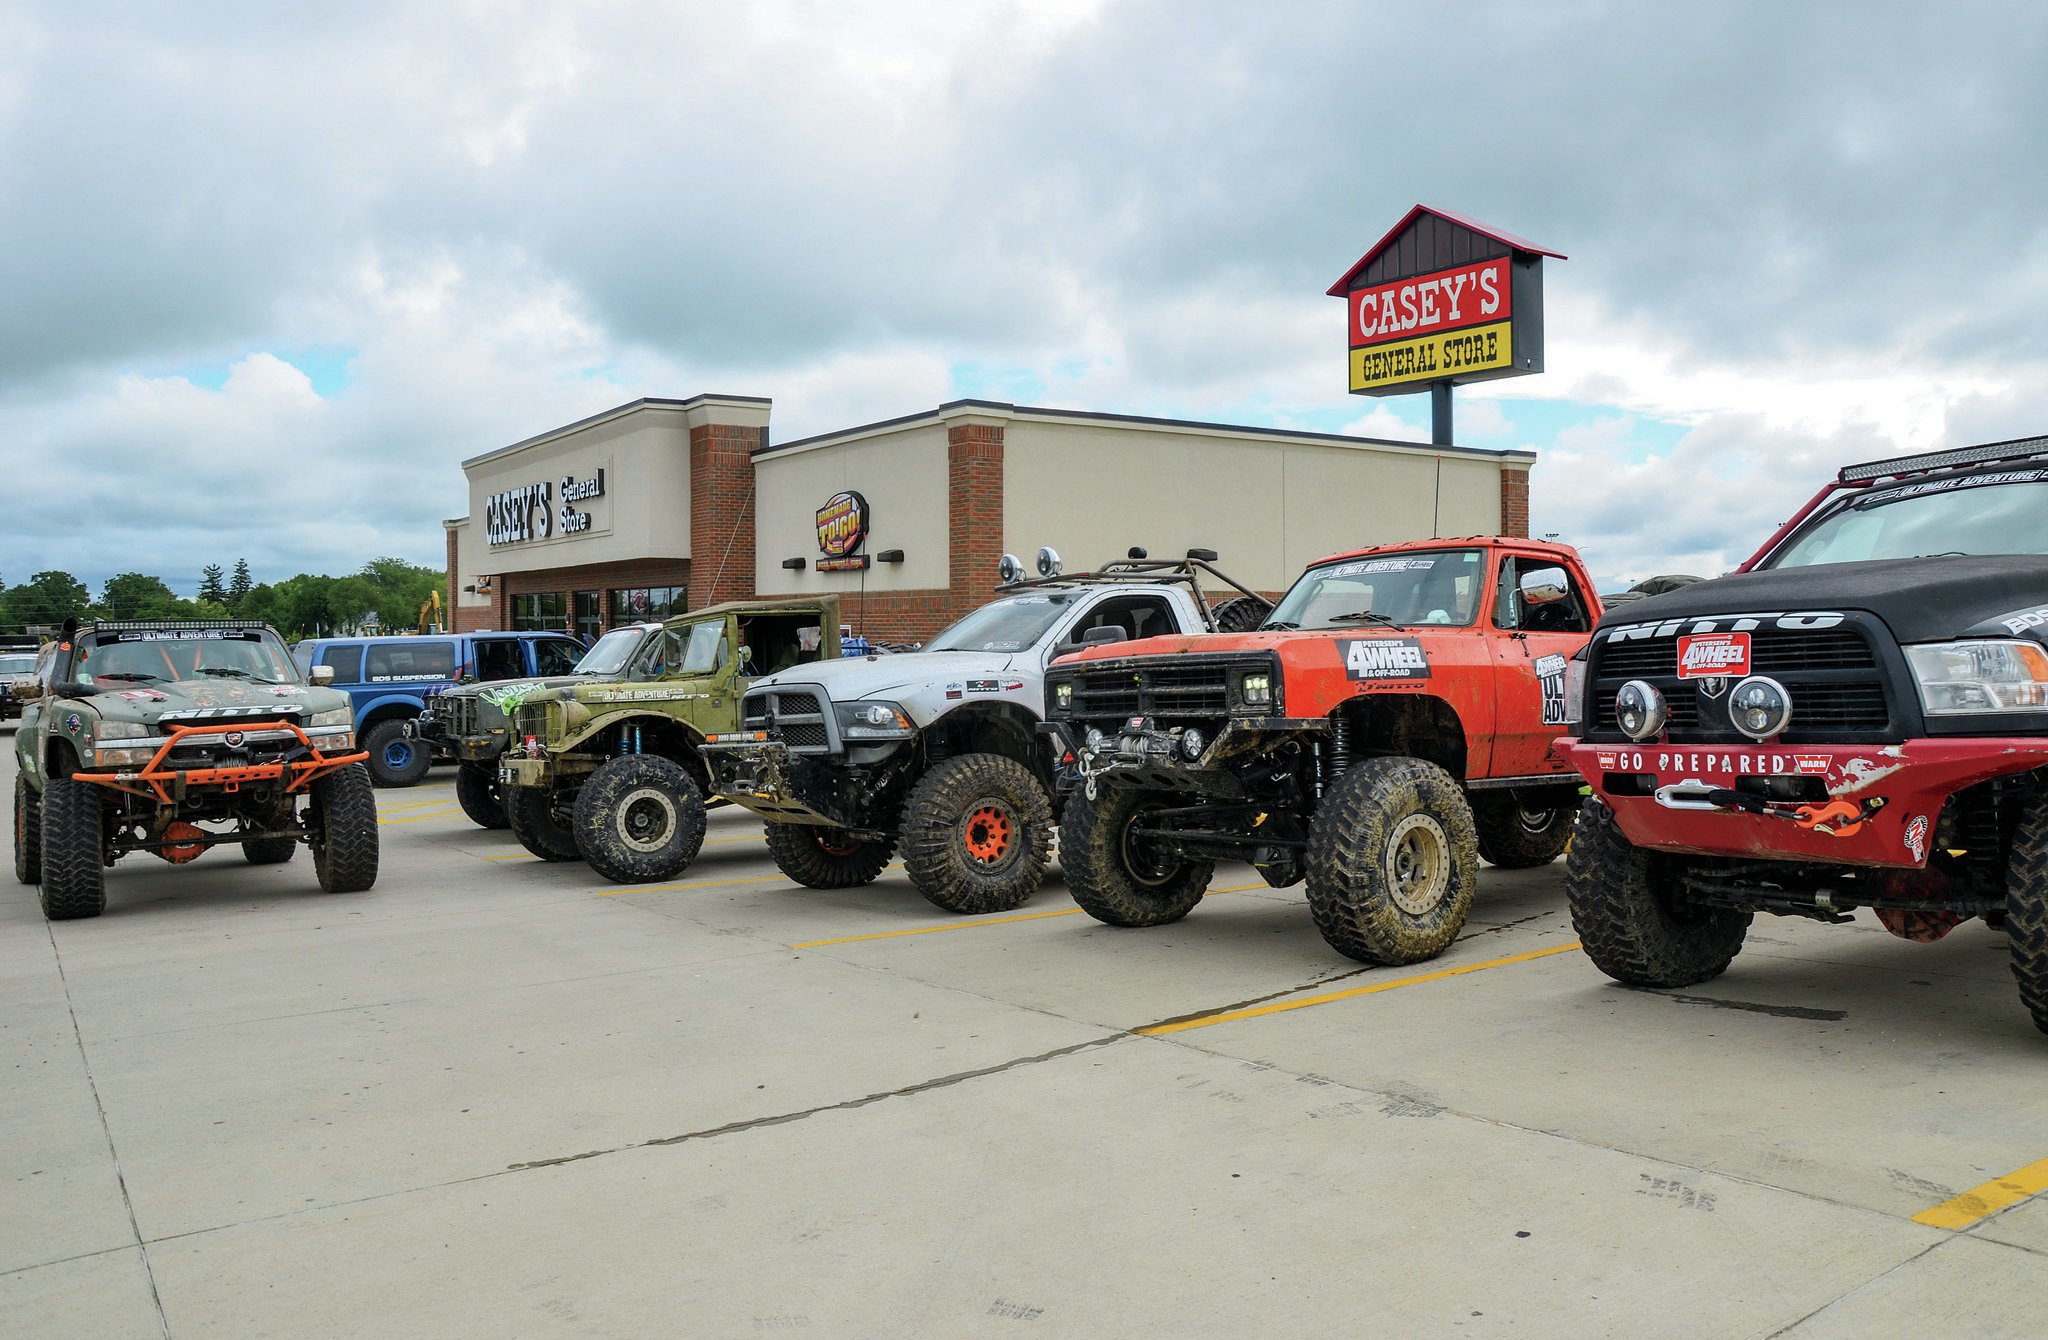 Ultimate Adventure 2014 had lots and lots of fullsize rigs. Here are just a few of the big rigs to hit the trails on this year's adventure. The only fullsizes not shown in this picture were the Voodoo Crew's own Trent McGee's budget-built '89 Blazer and reader Bryan Schlagel's '78 Bronco. All these big rigs made the trip relatively unscathed despite early warnings from Péwé about tight squeezes between trees and rocks. Fullsize rigs add a bit of a challenge to the UA but also provide more room for packing gear, tools, and parts. Can you guess the heaviest rig on the trip? Here is a hint. It's in this picture.